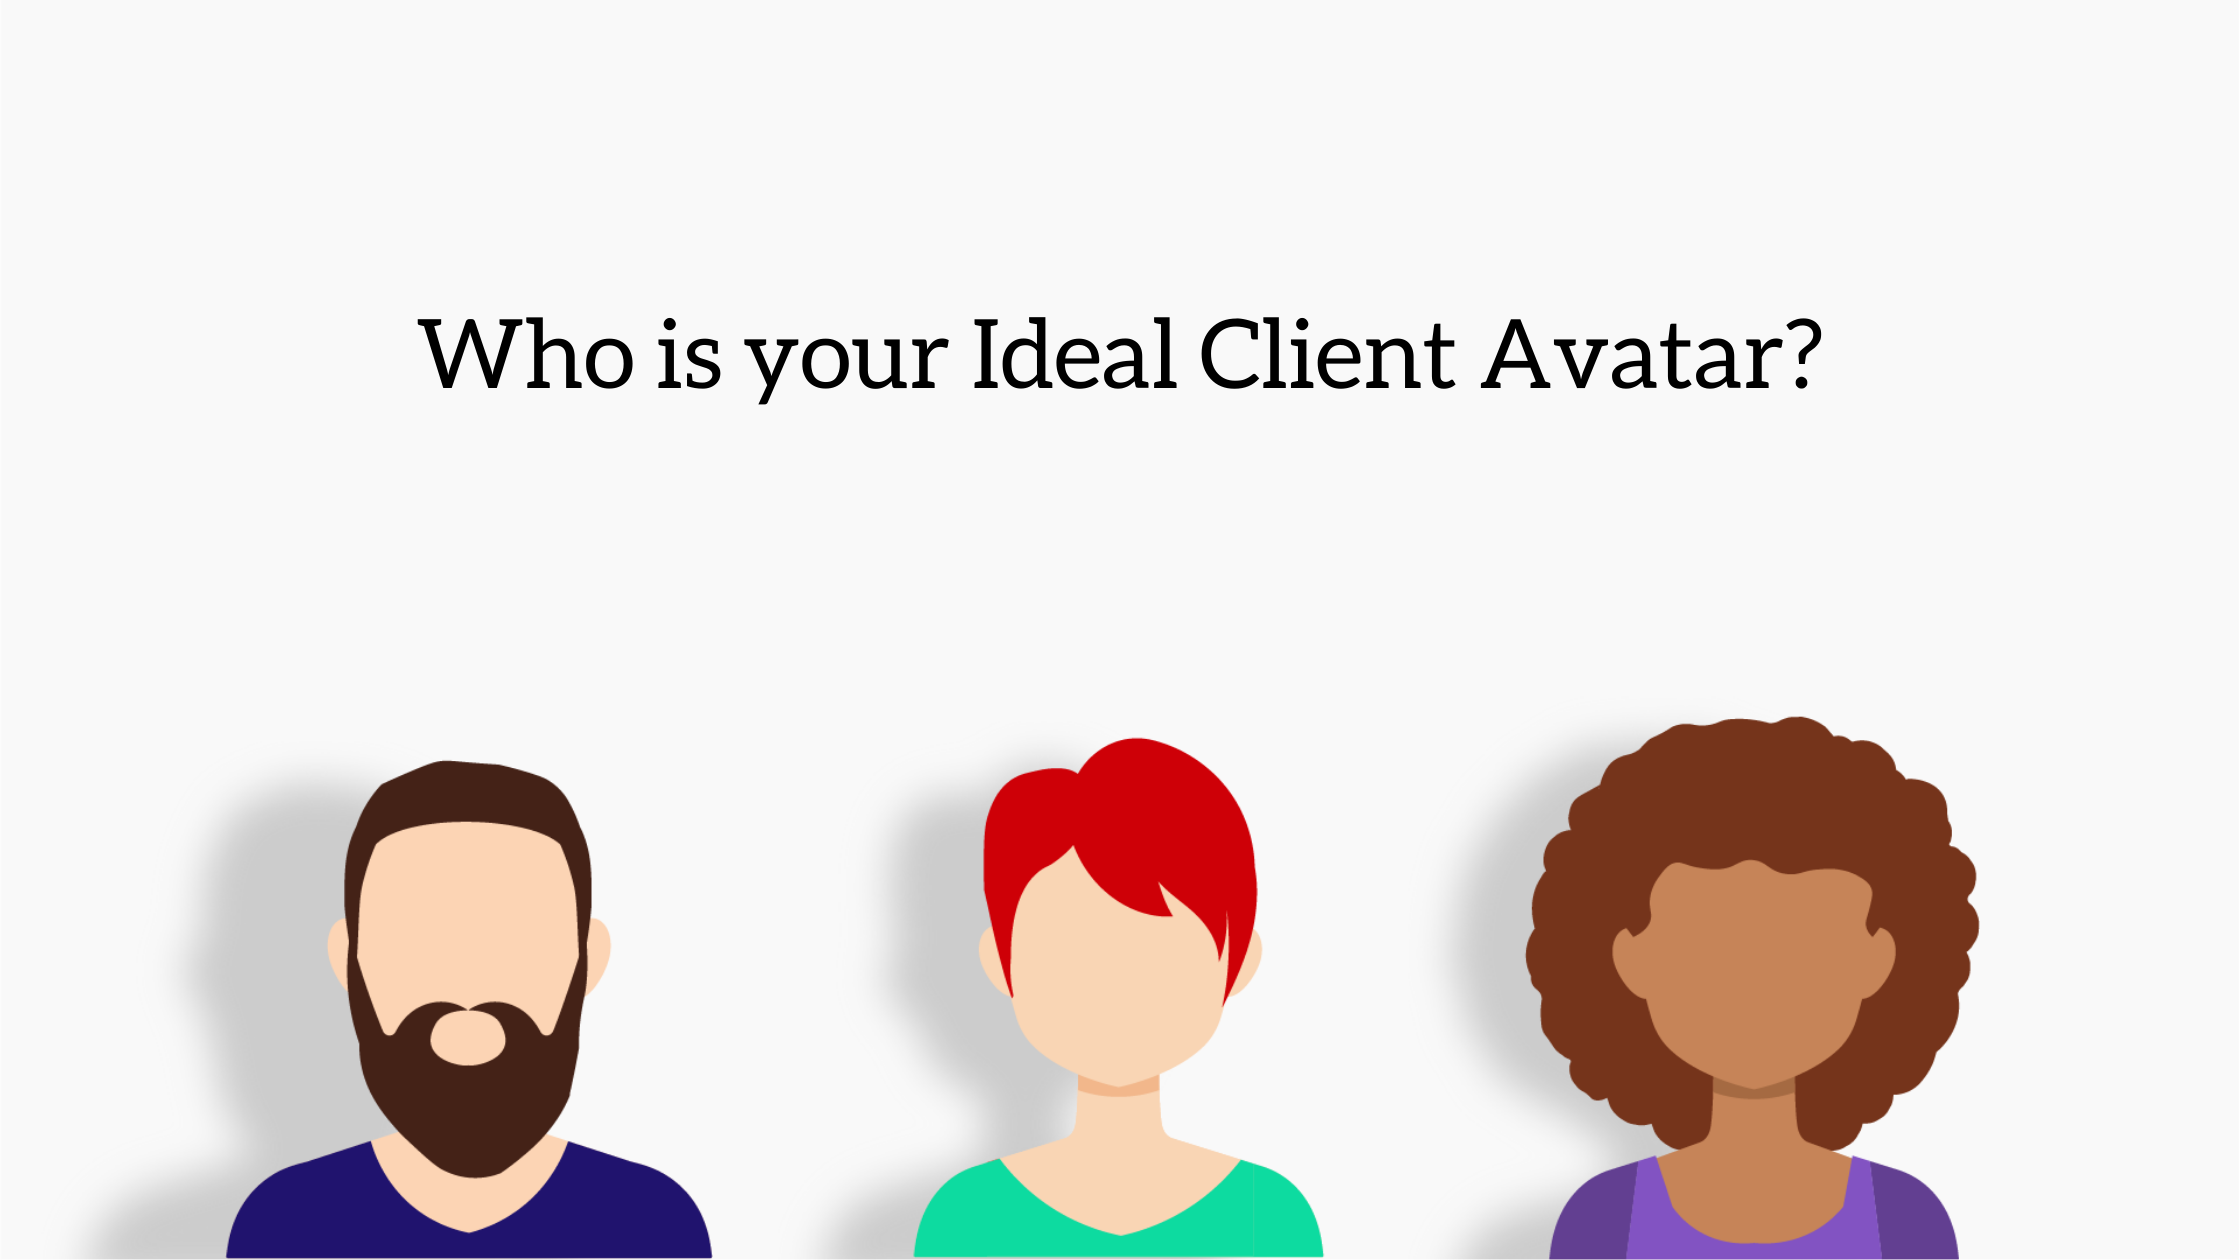 Ideal client avatar